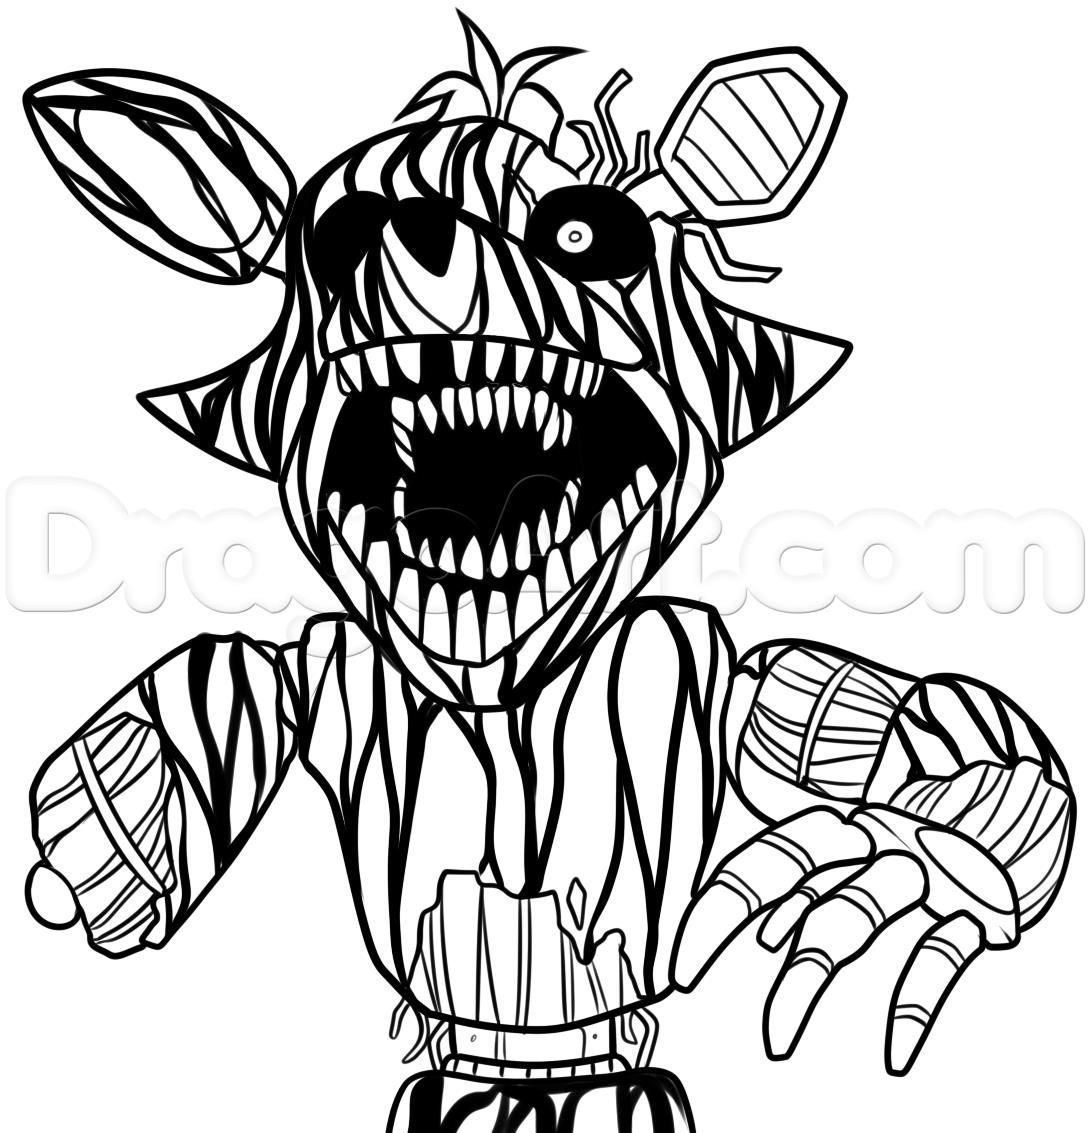 Colorings co five nights at freddys 4 coloring pages 4 Ballora Five Nights at Freddy's Coloring Pages Knight Coloring Pages Sword and Shield Coloring Pages